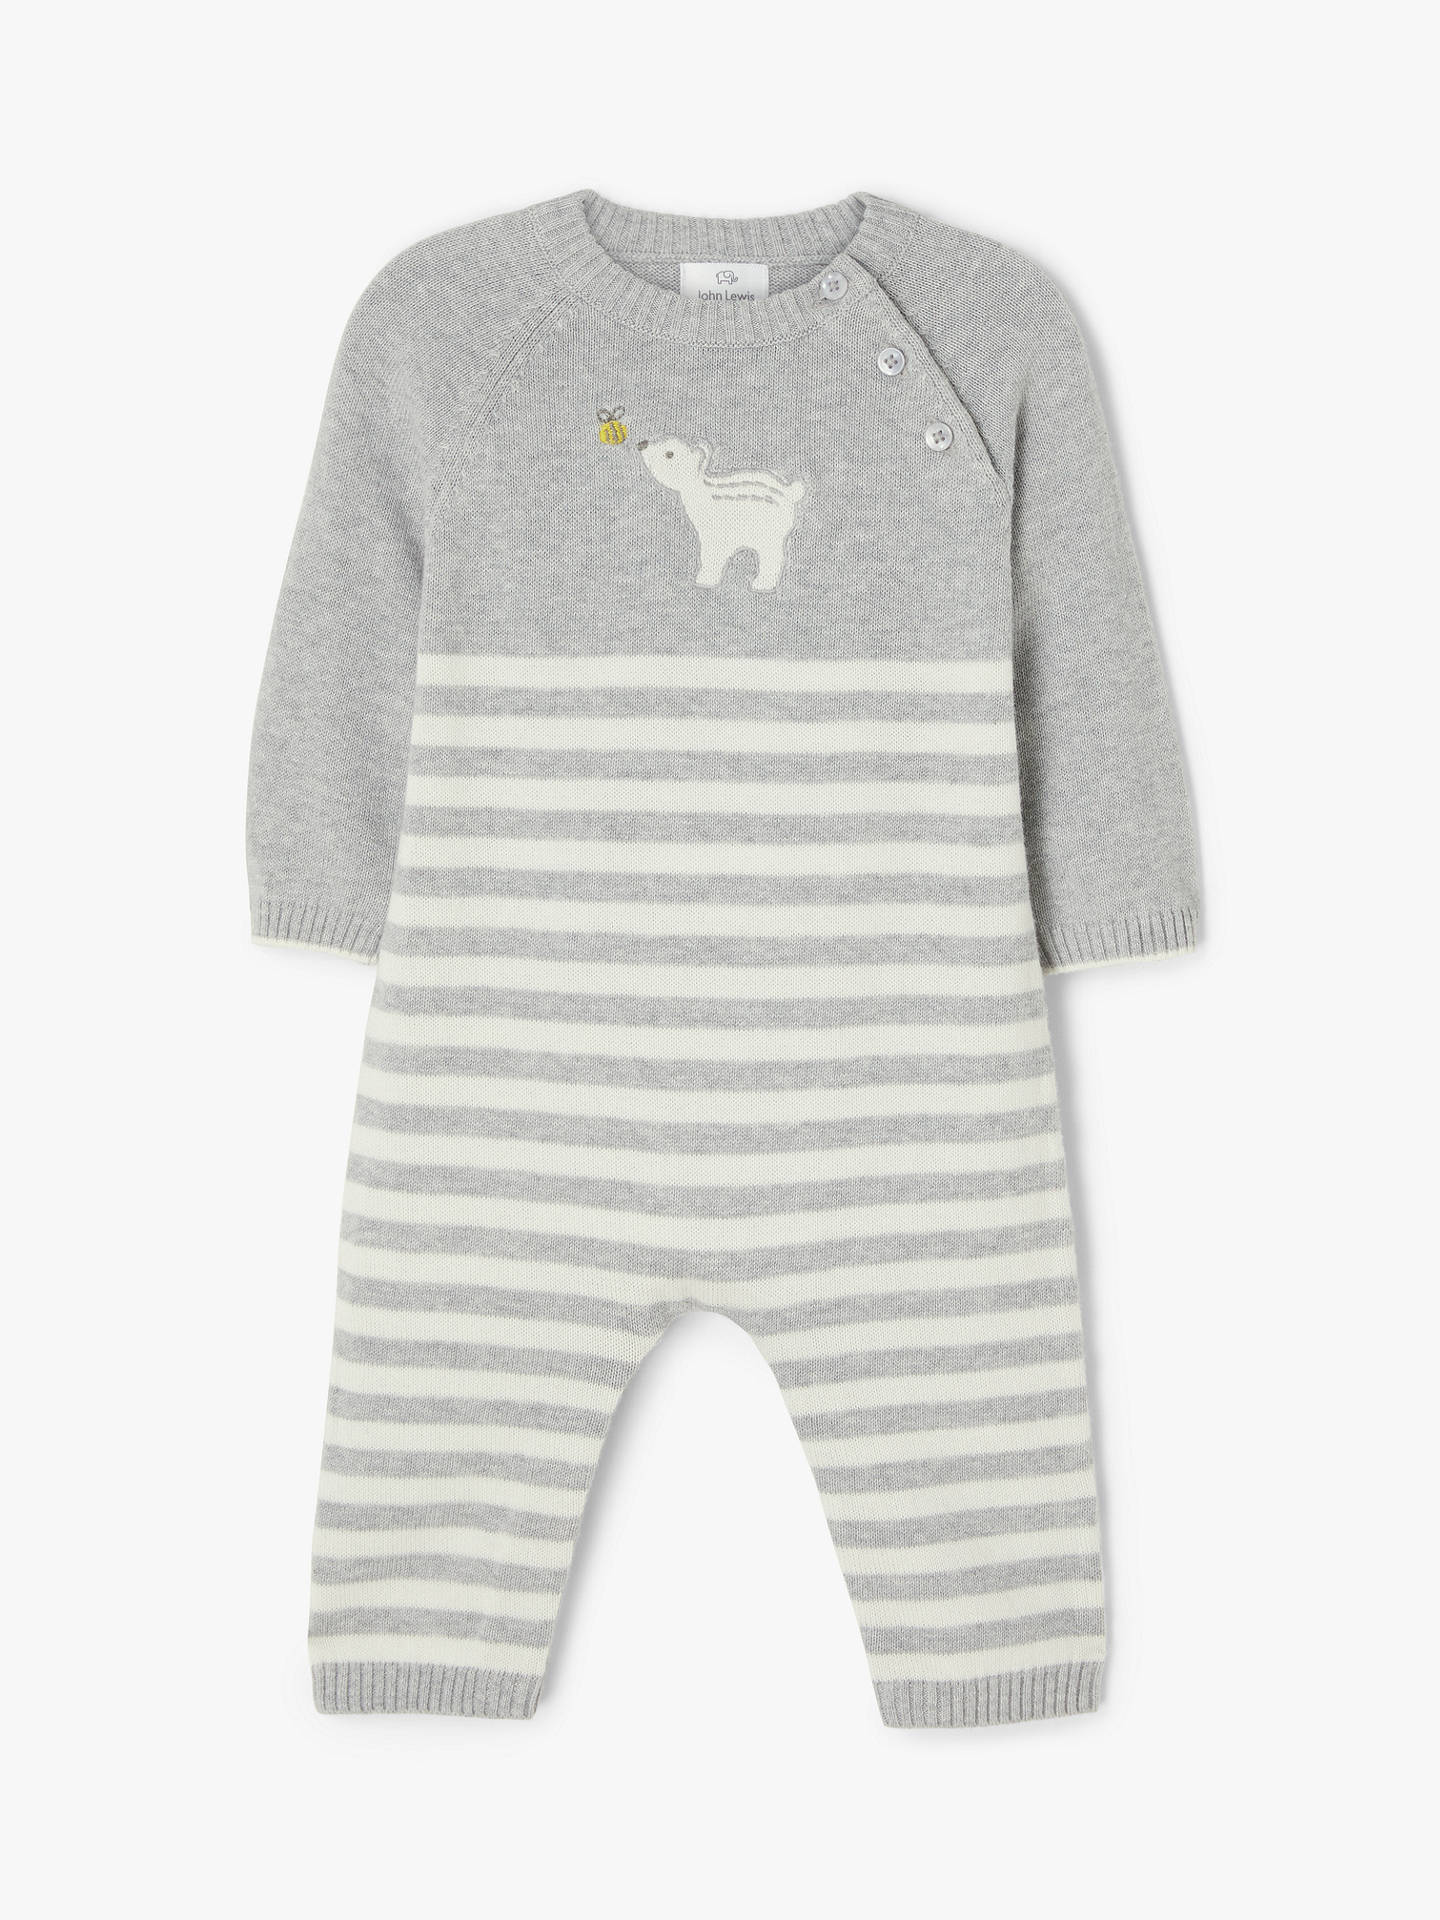 John Lewis & Partners Baby Gots Organic Cotton Bear Knit Romper, Light Grey by John Lewis & Partners